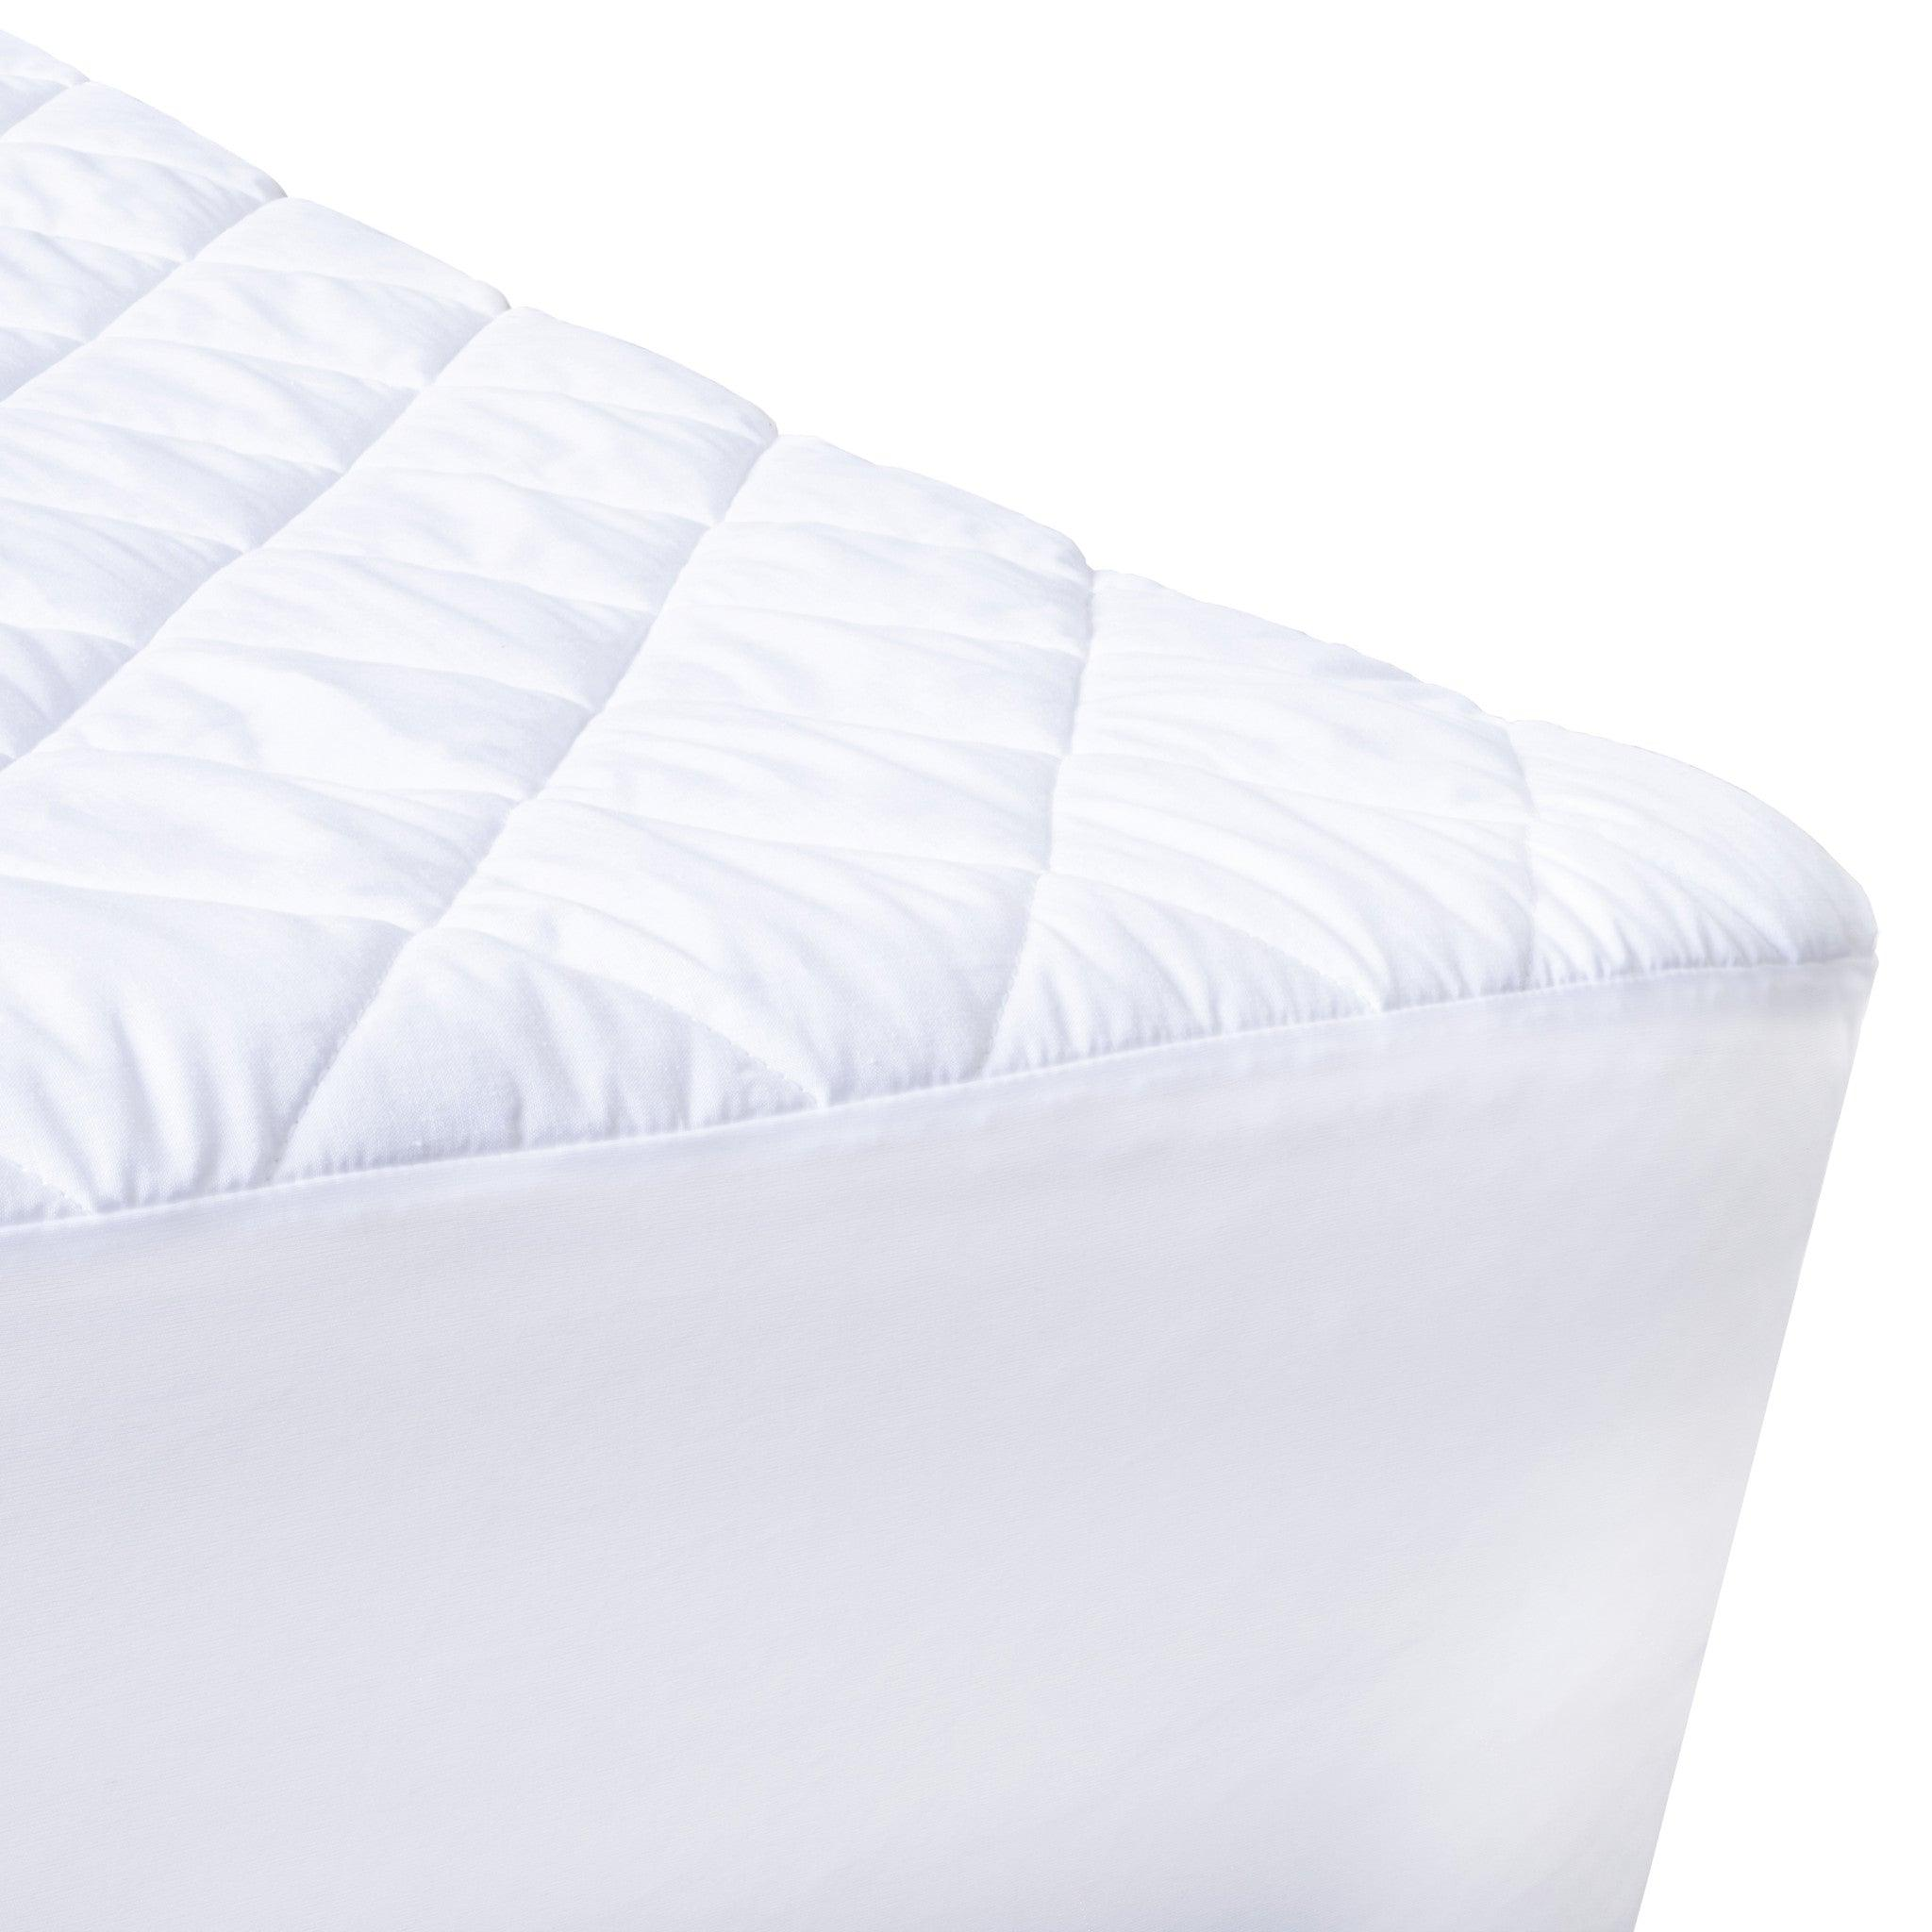 Mattress pillowtop - Revo Designs - 4